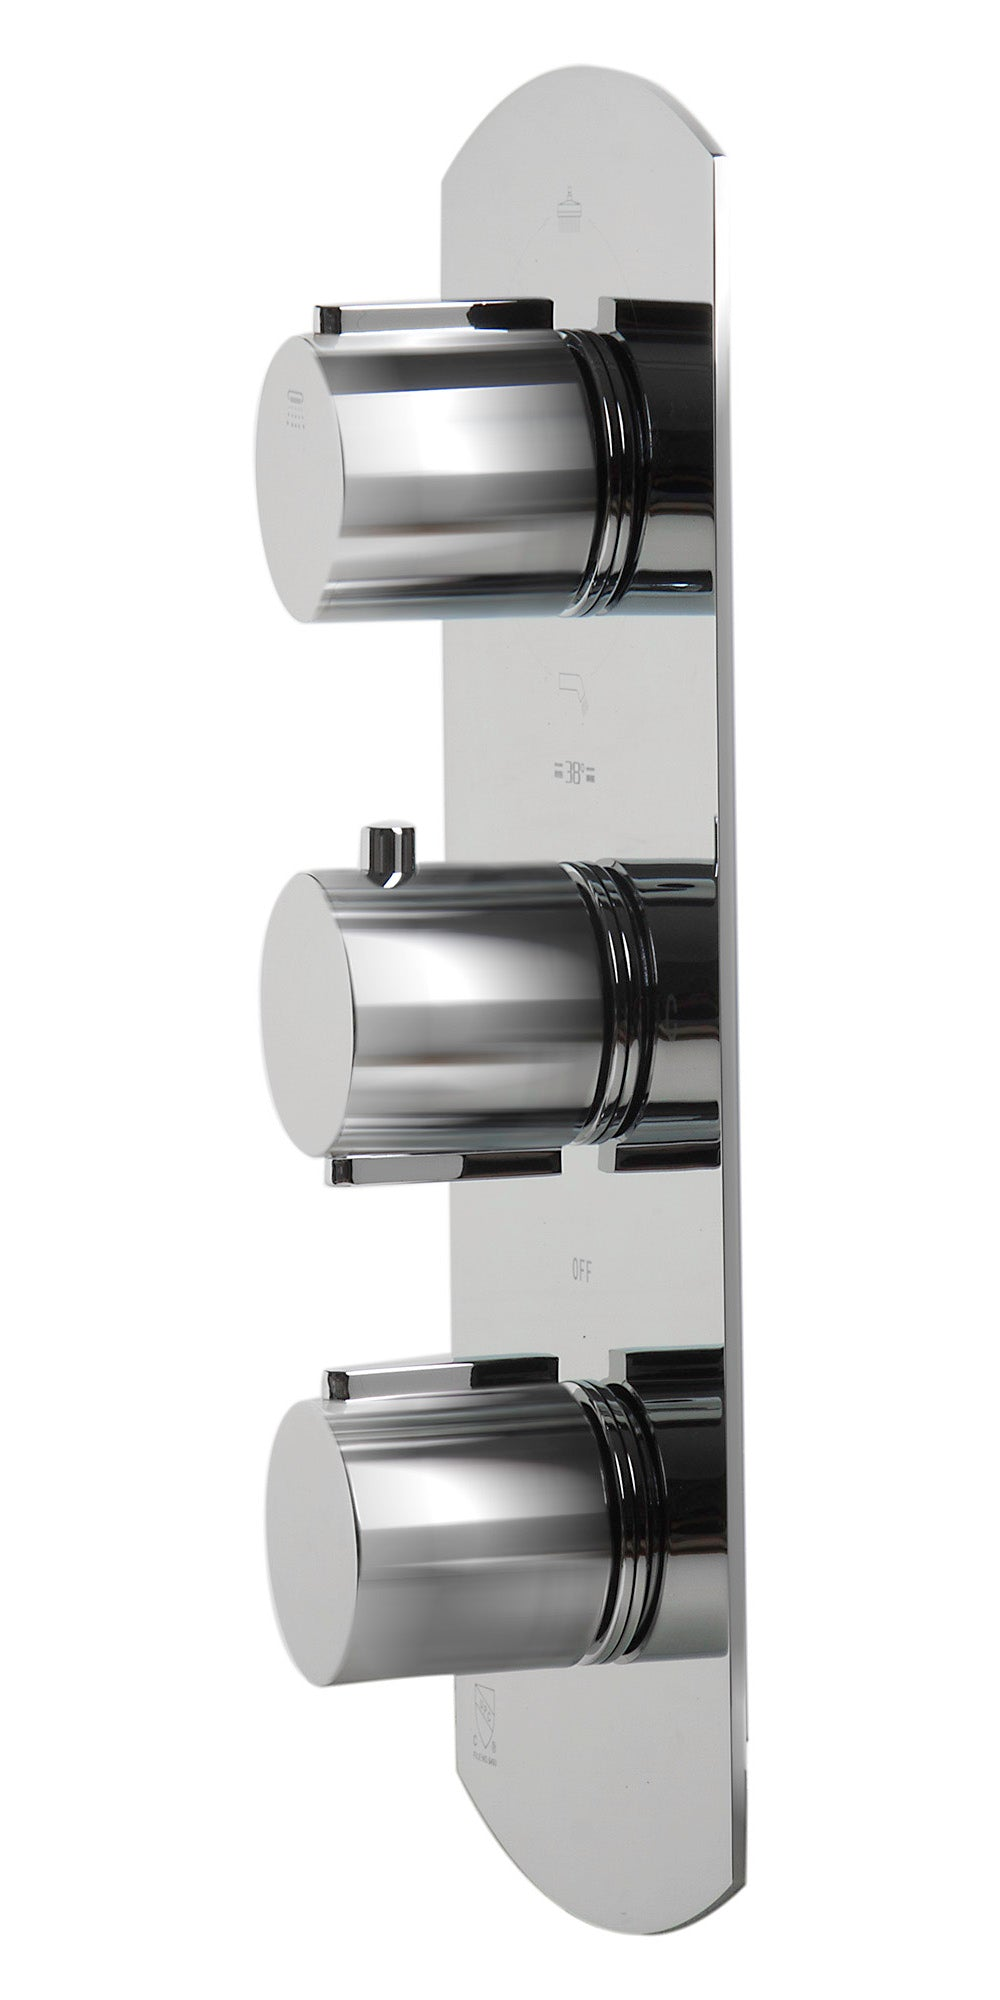 ALFI Concealed 4-Way Thermostatic Valve Shower Mixer /w Round Knobs - FaucetMart